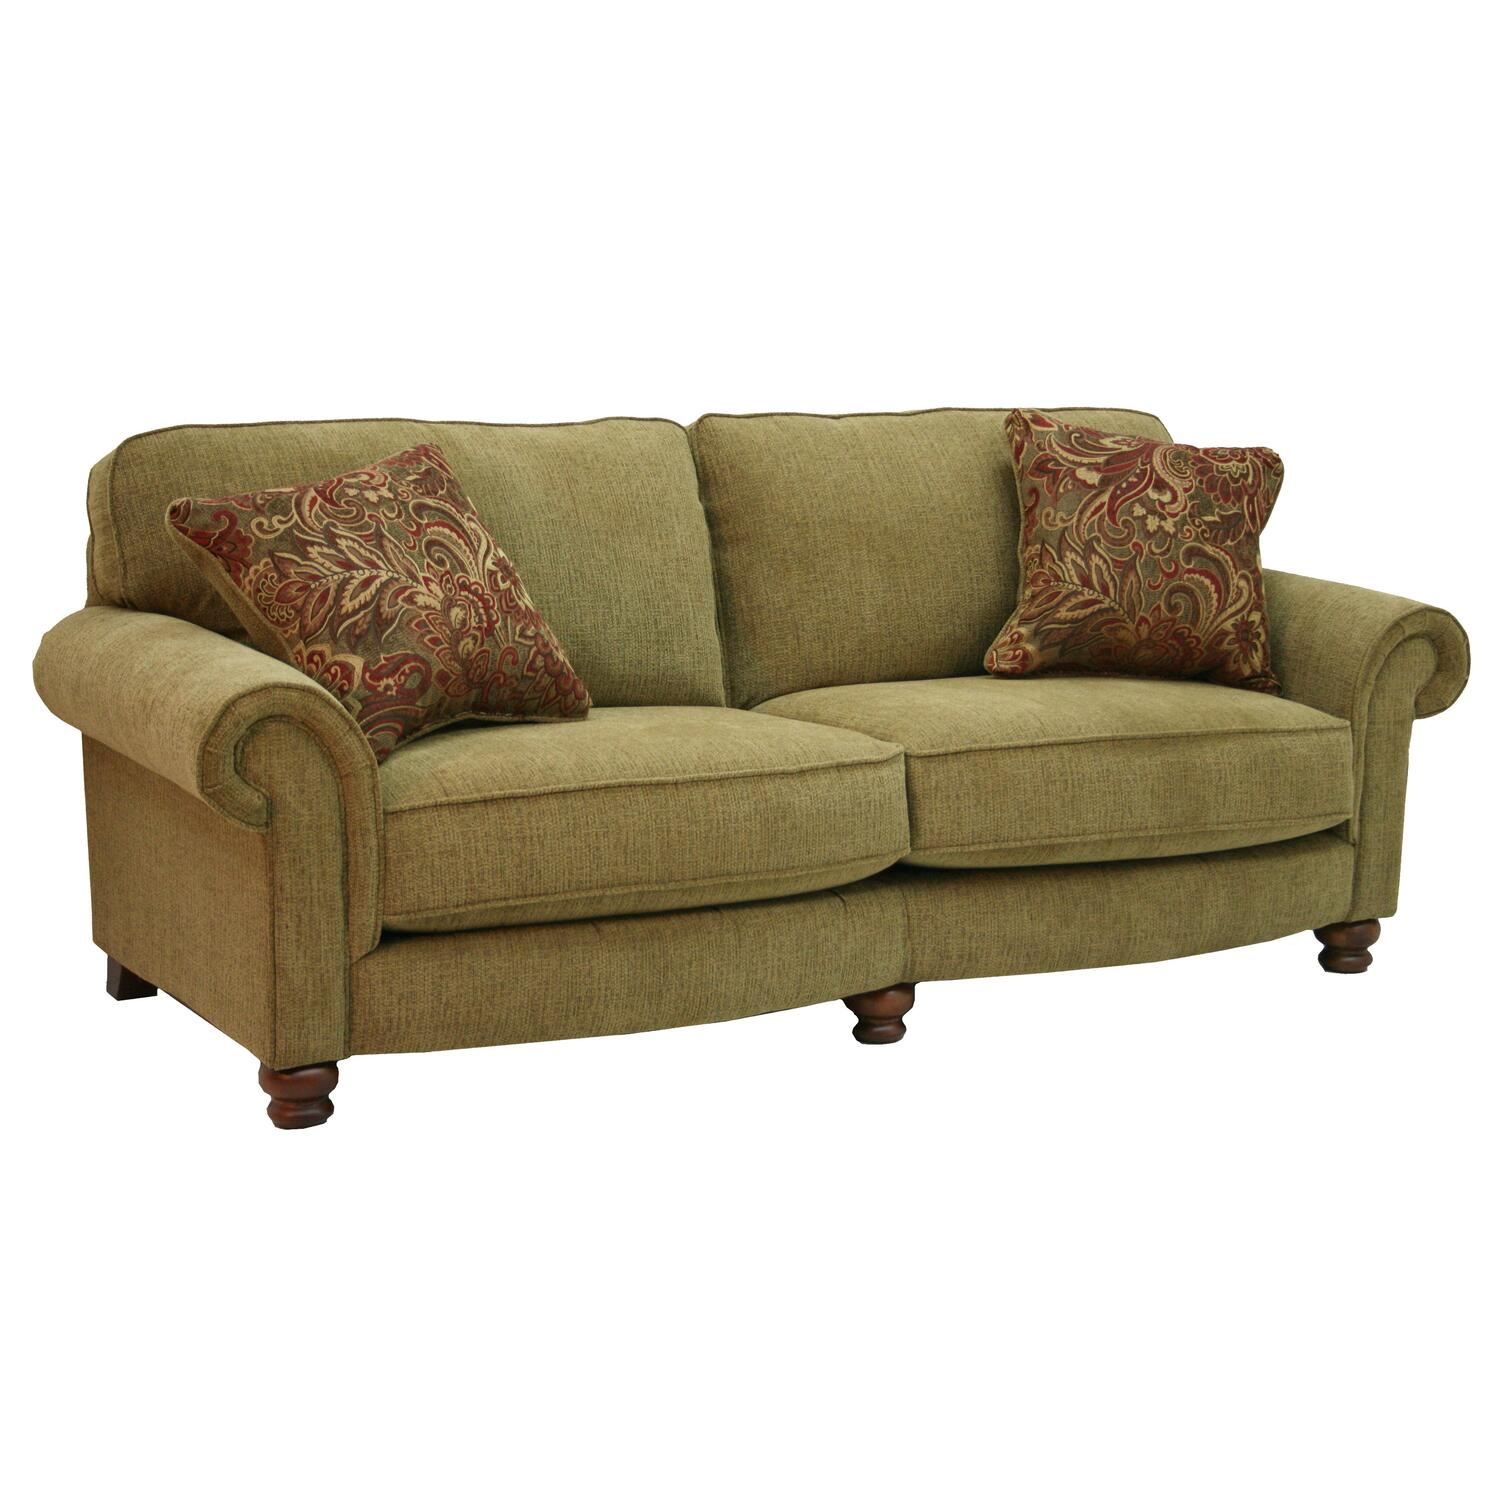 Jackson Furniture Bradley Sofa by OJ merce 4352 03 2580